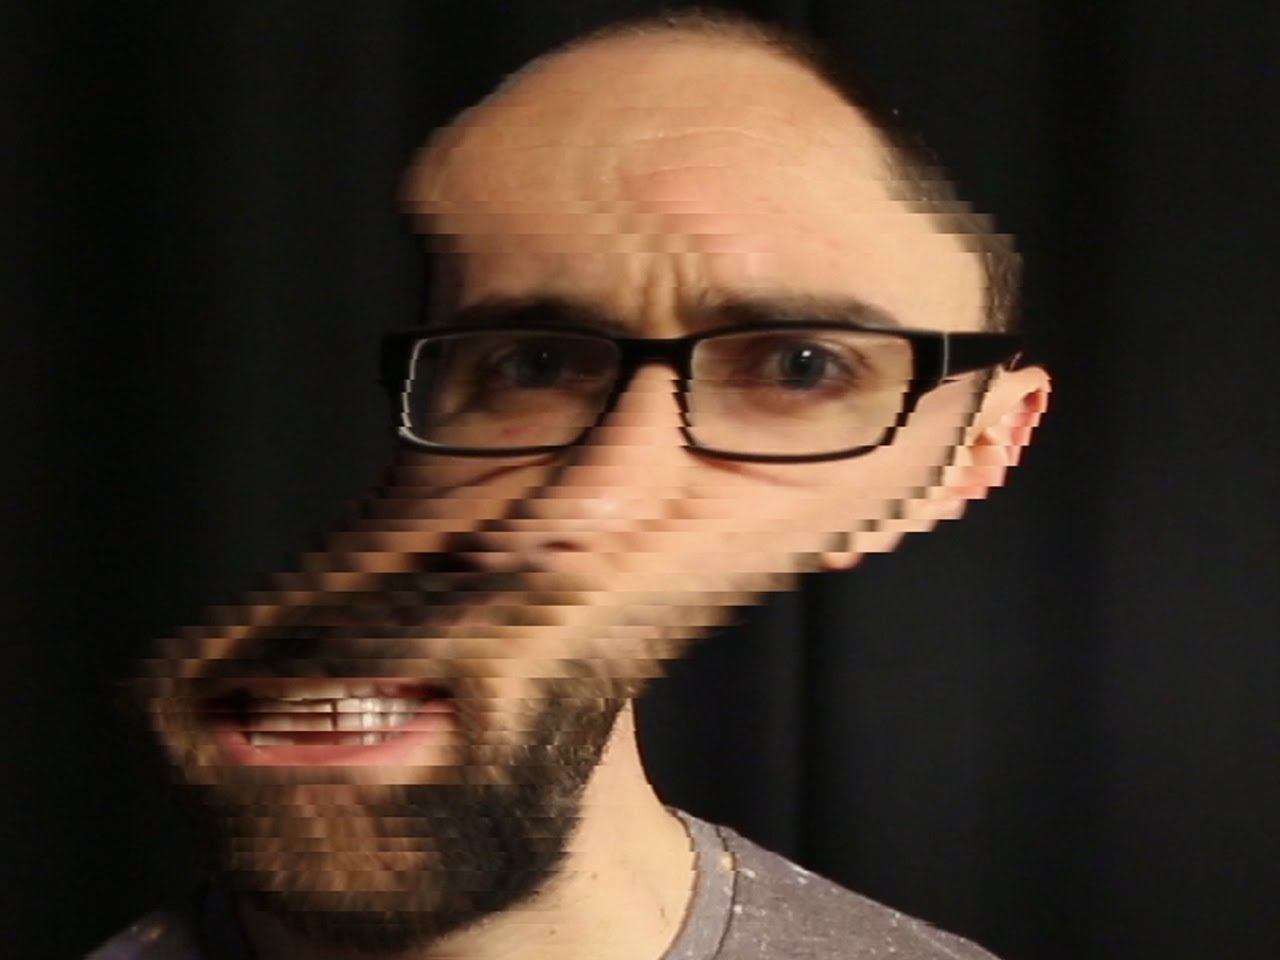 distorted face.jpg